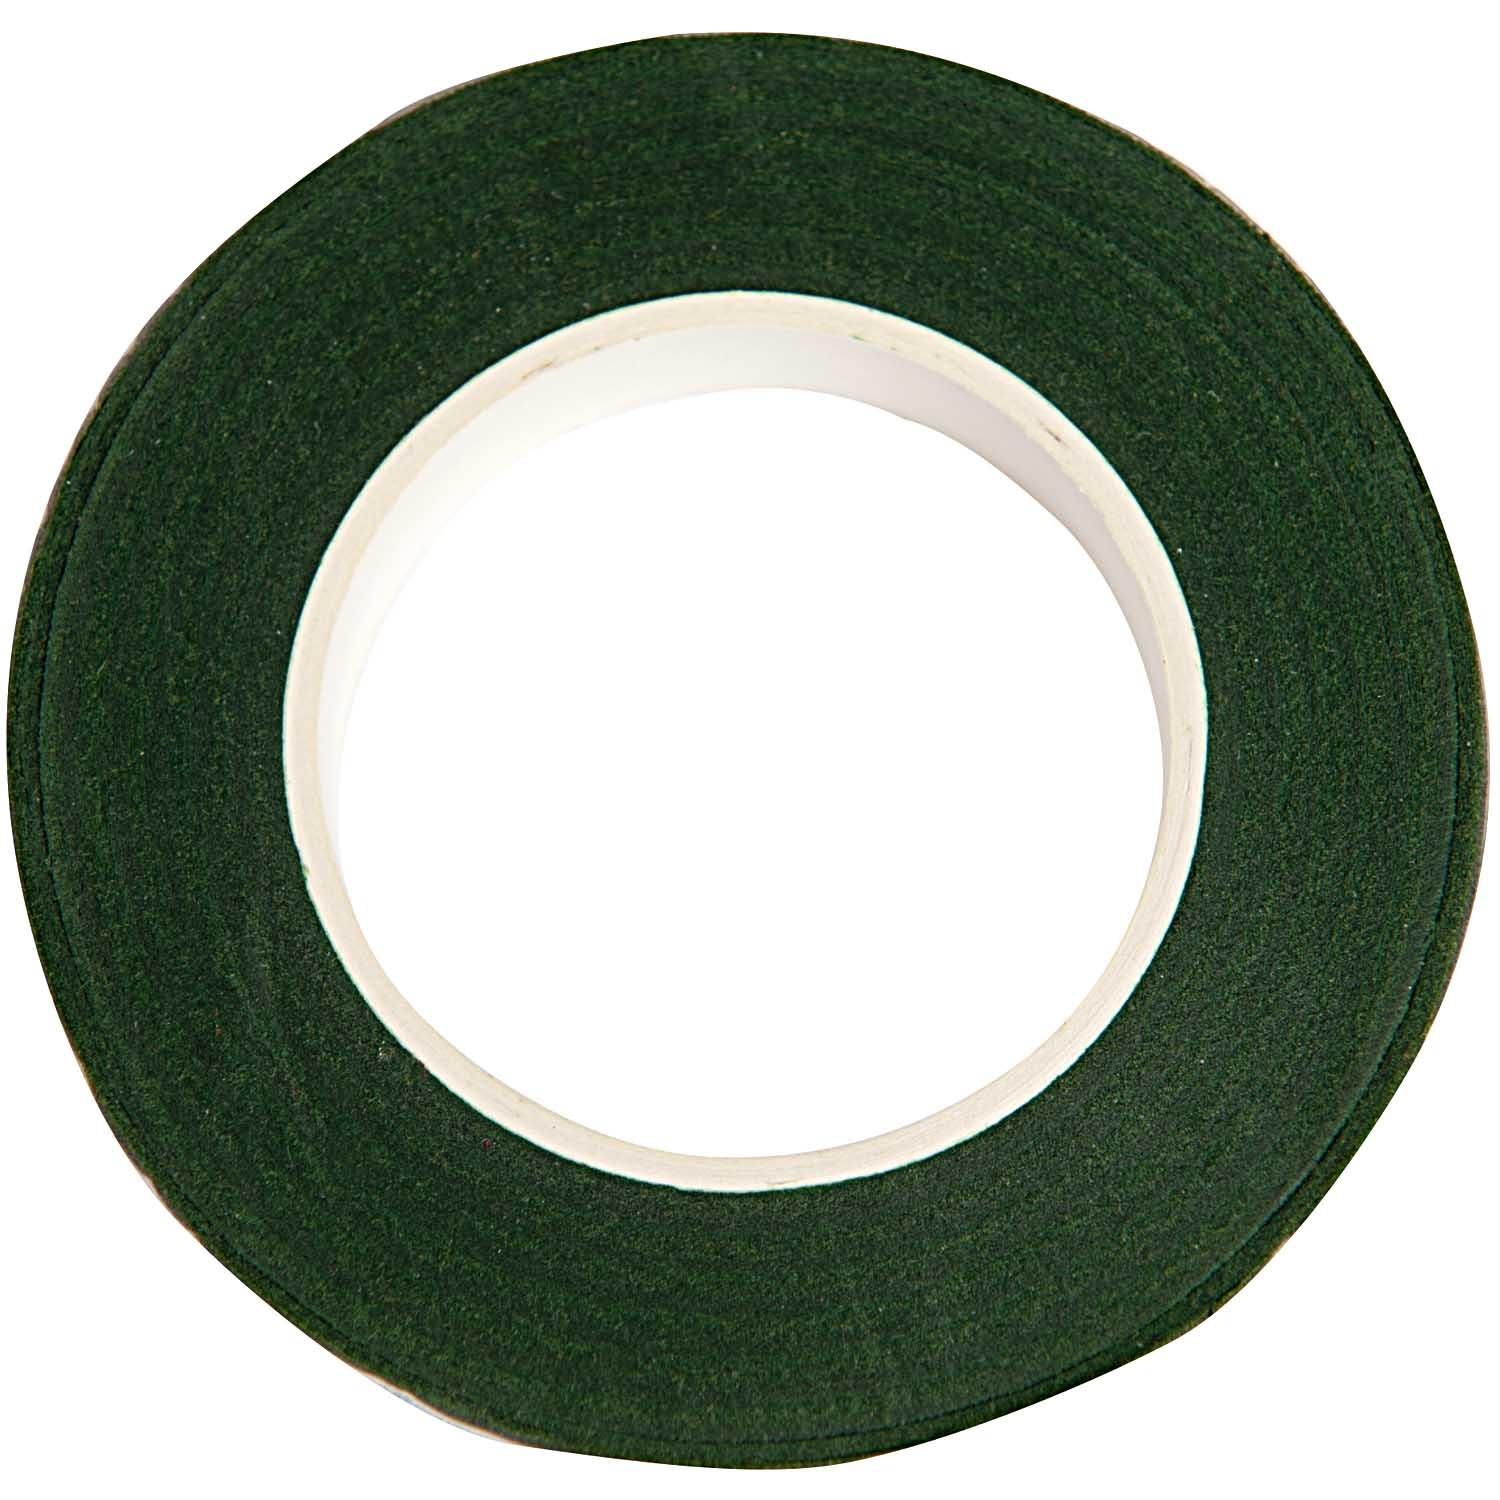 Rico NAY FLORAL CREPE TAPE, DARK GREEN  12 MM X 27,5 M